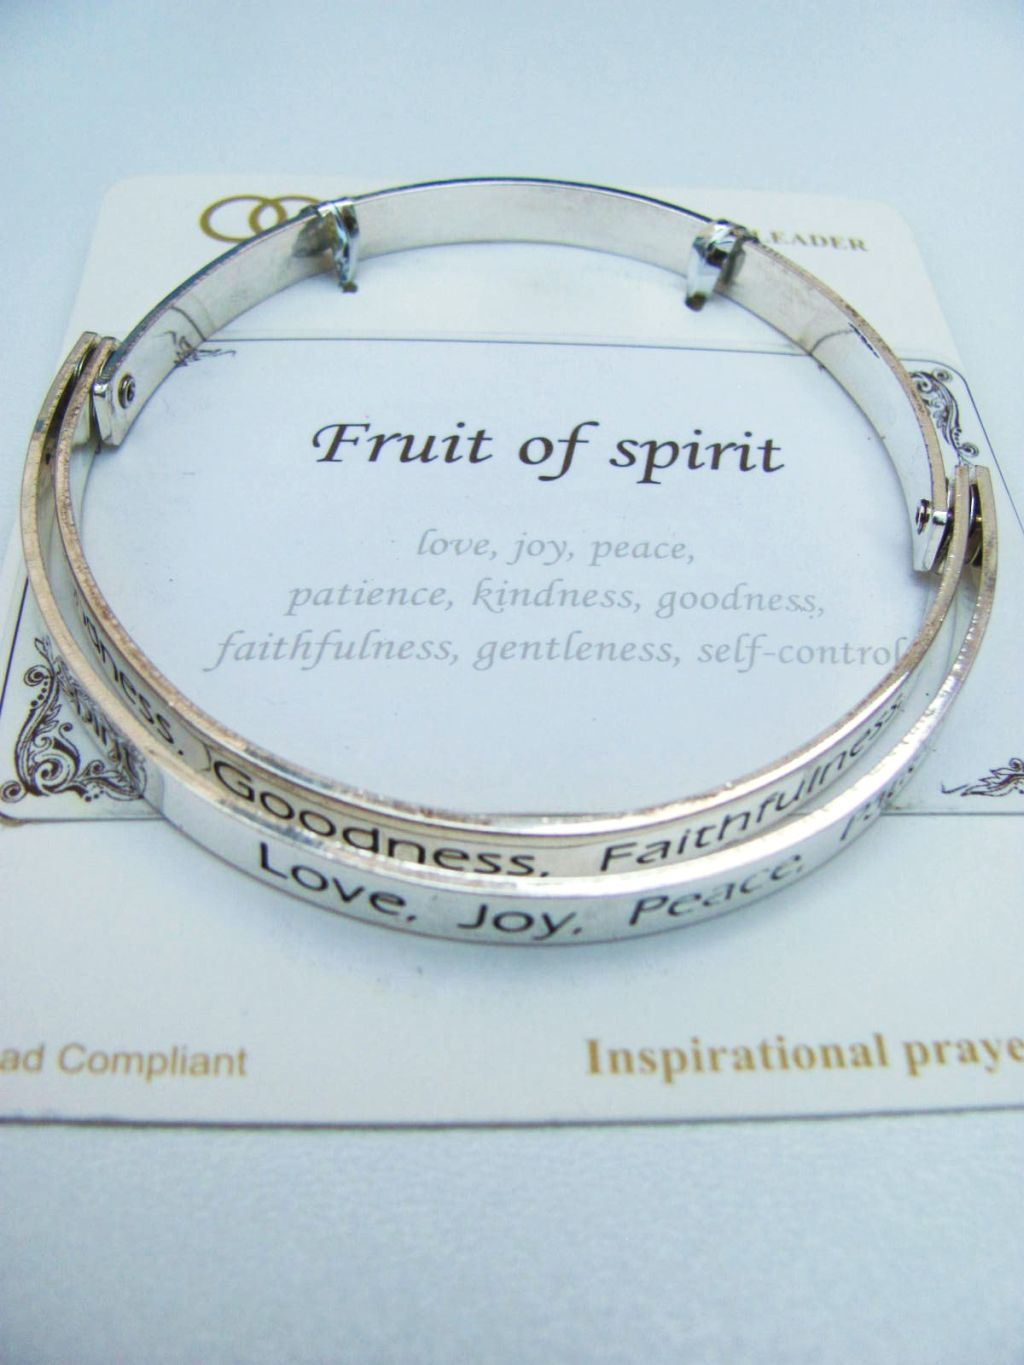 Fruit of the Spirit Inspirational Message Bangle Bracelet, Contemporary Style